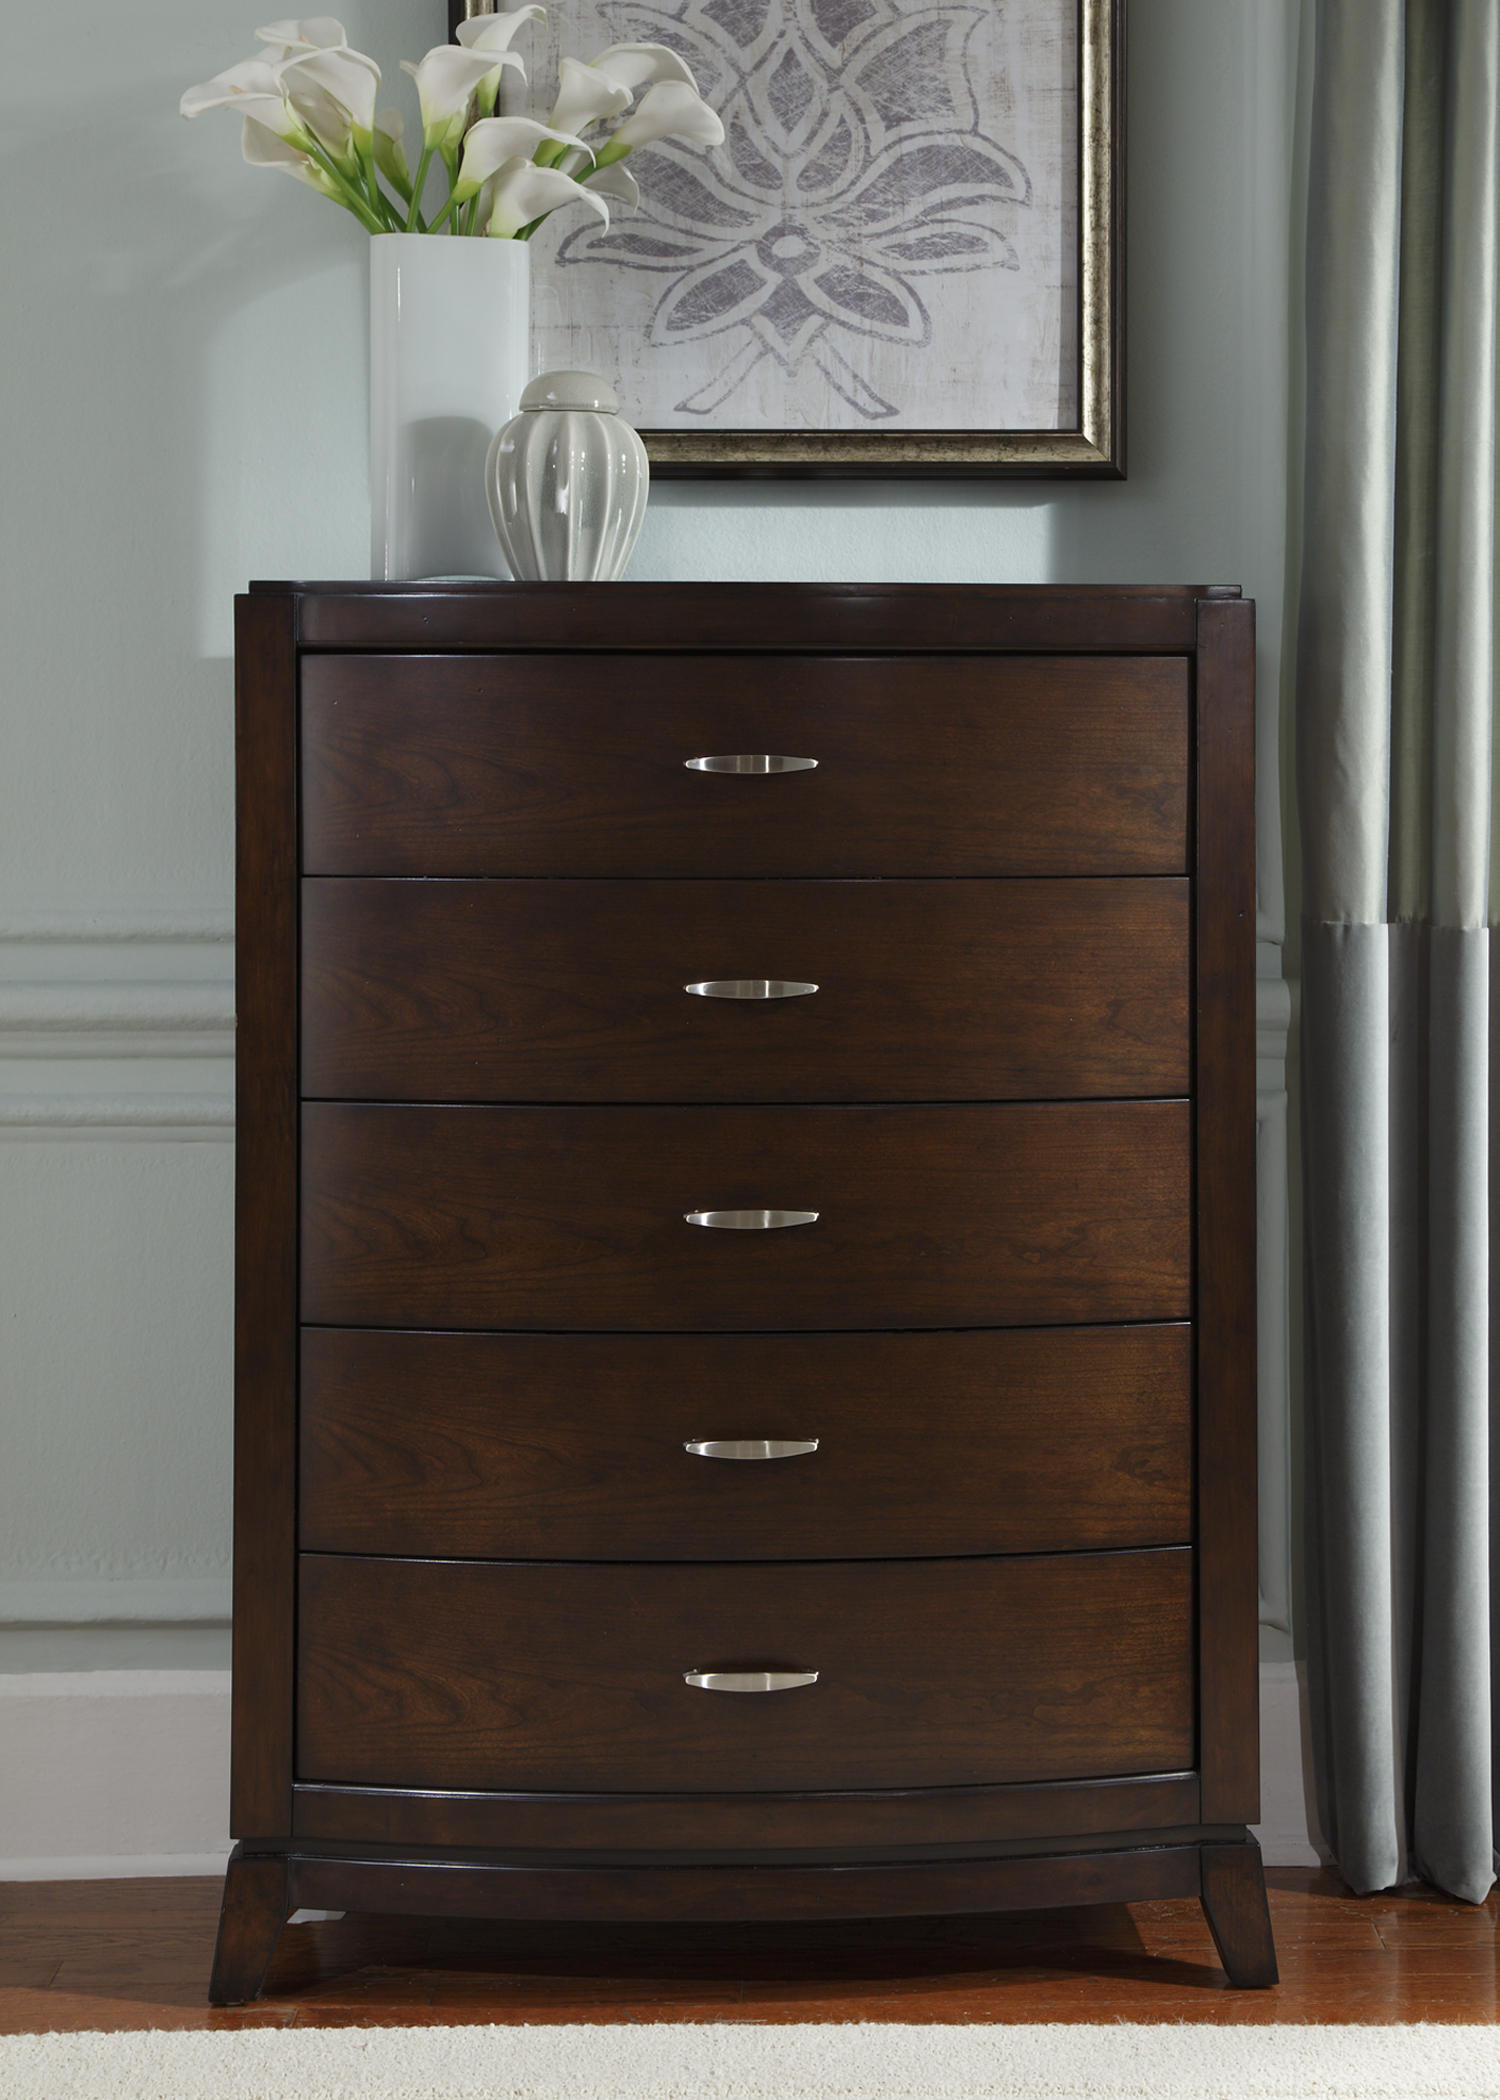 Liberty Furniture Avalon 5 Drawer Chest - Item Number: 505-BR41